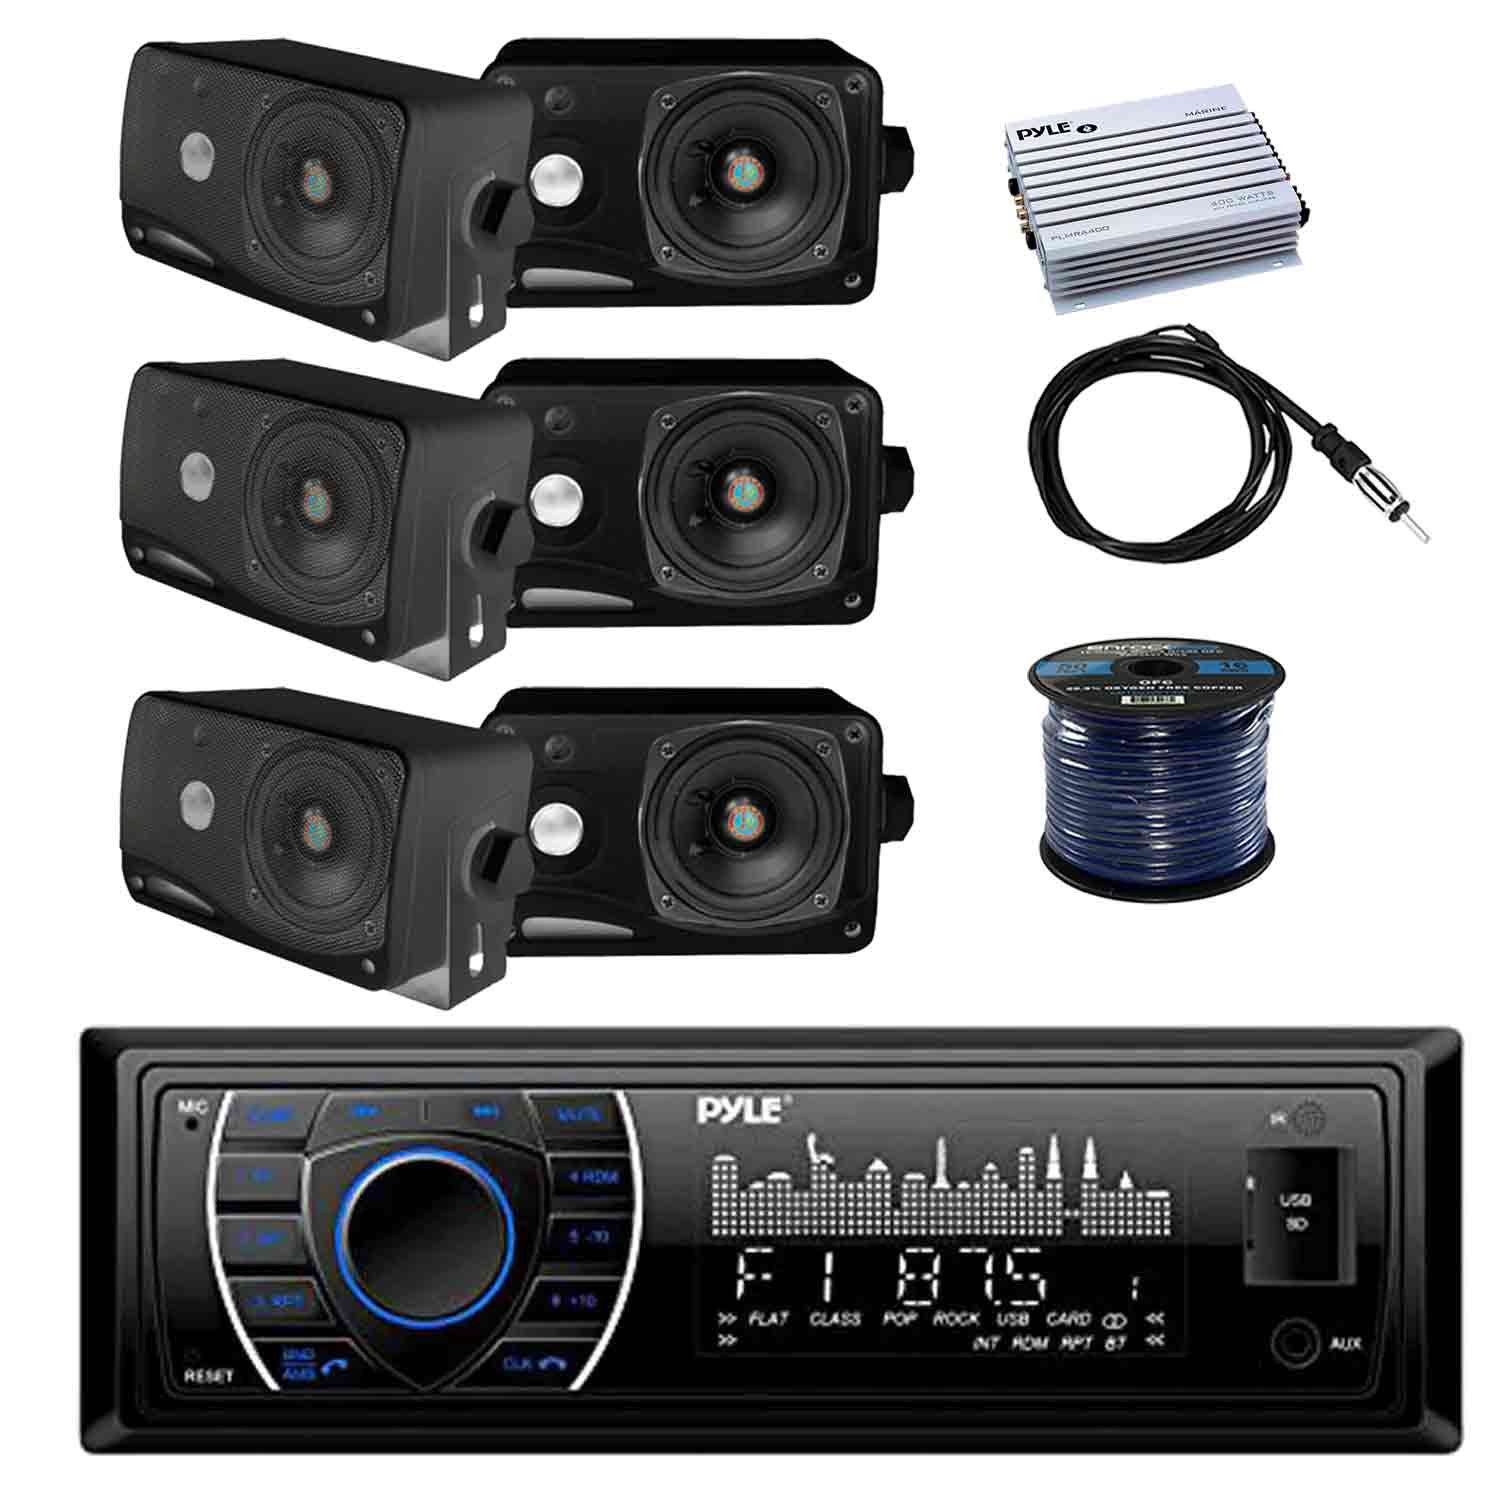 PYLE PLRMR27BTB Marine Bluetooth Receiver Stereo(Black) w/Pyle 3.5'' 200W 3-Way Weather Proof Mini Box Speakers(3-Pairs), Pyle 4-Chan 400W WP Marine Amp, Enrock Marine Antenna & 50' 16G Speaker Wire